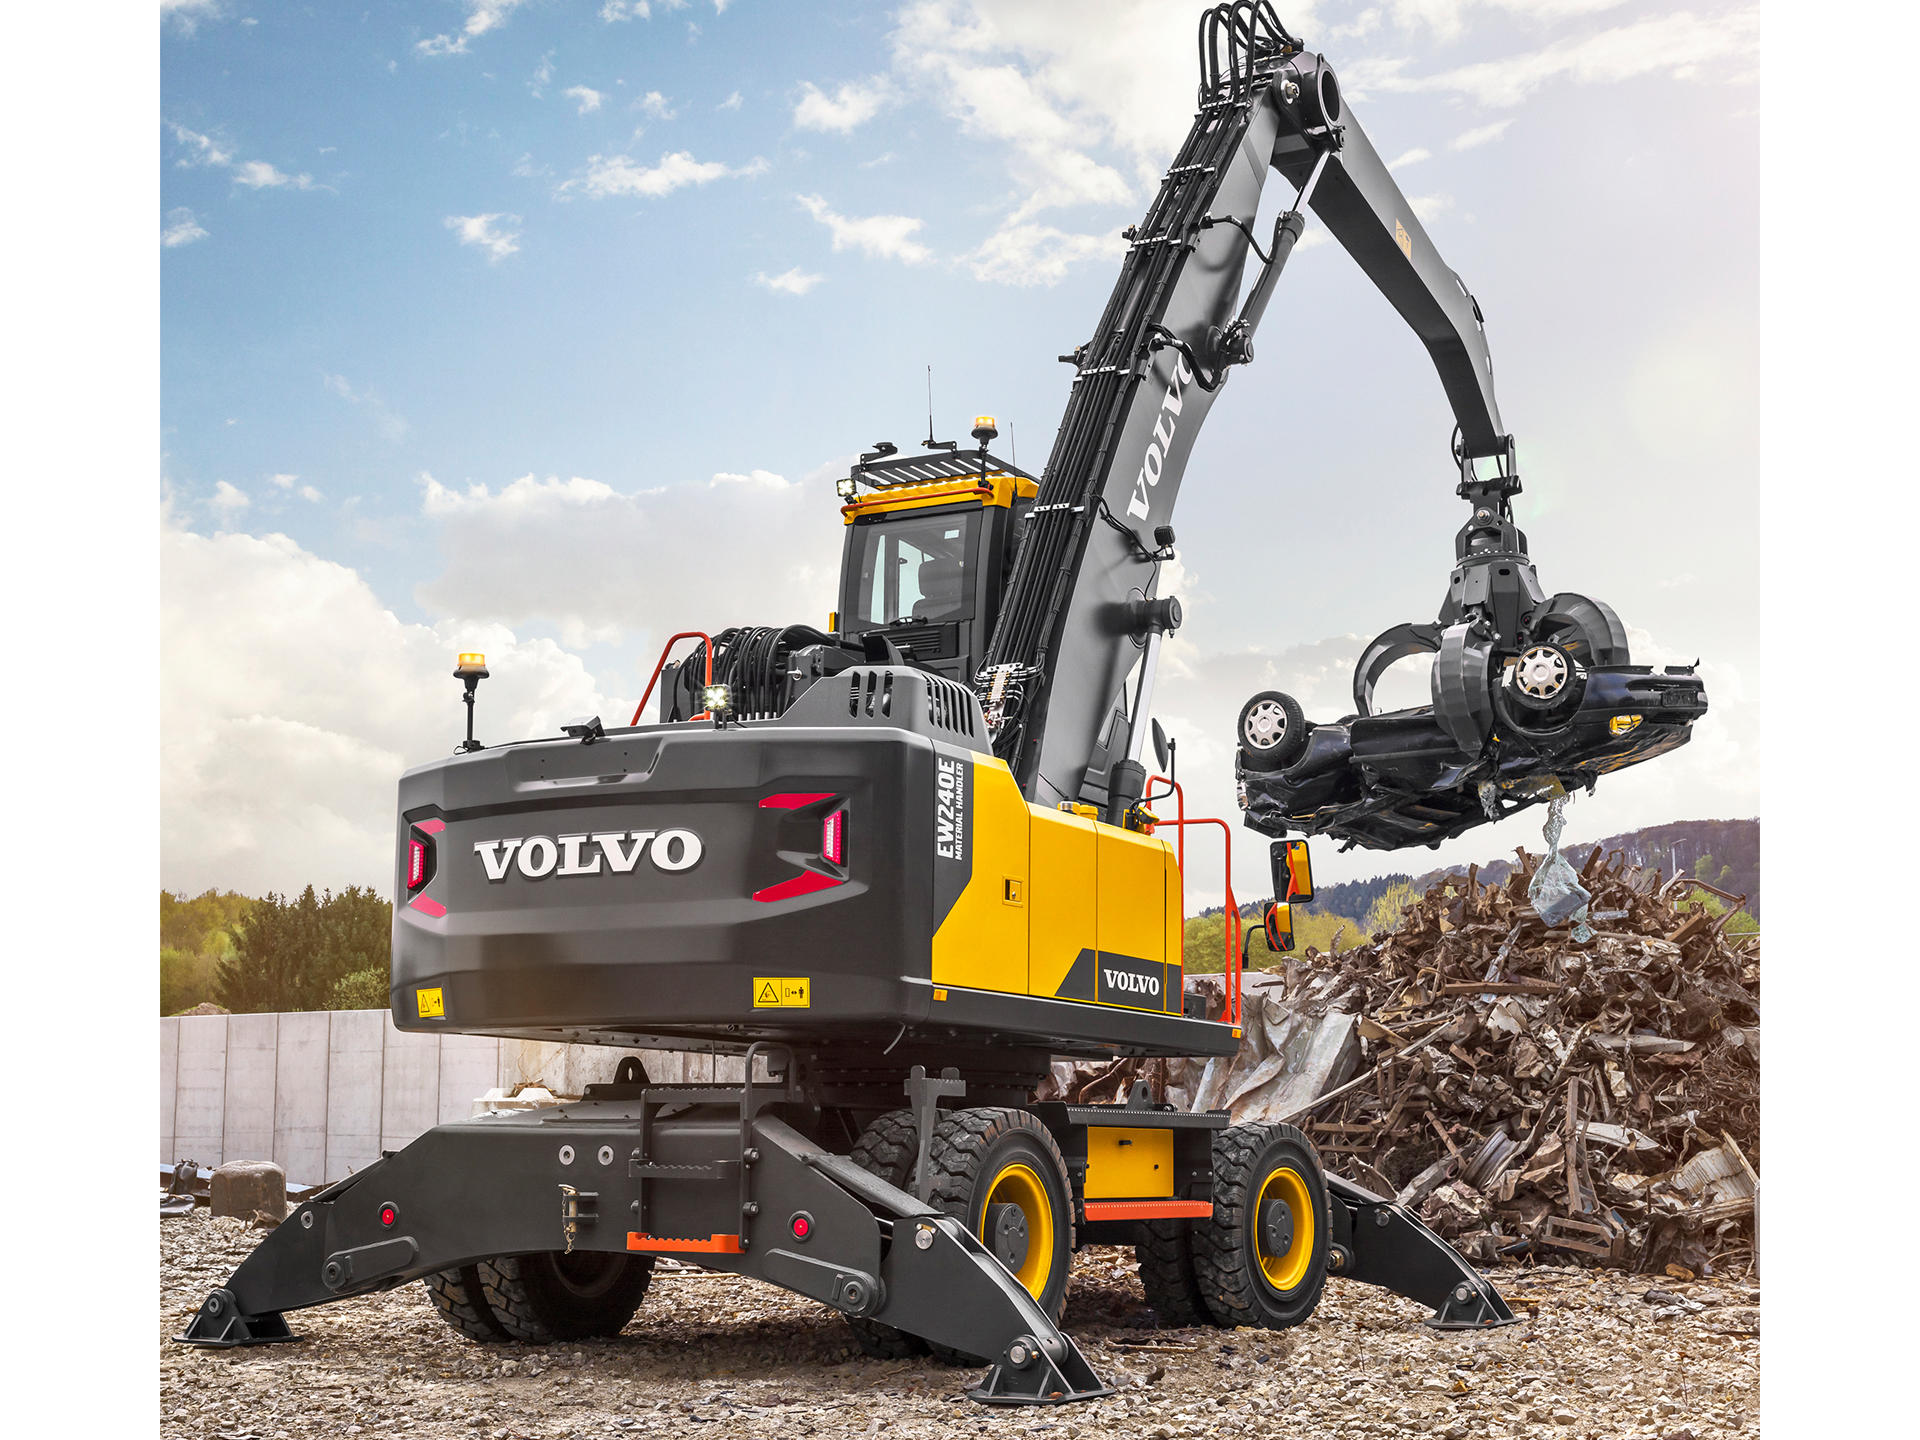 built-by-the-best-introducing-the-all-new-EW240E-material-handler-from-volvo-02-1920